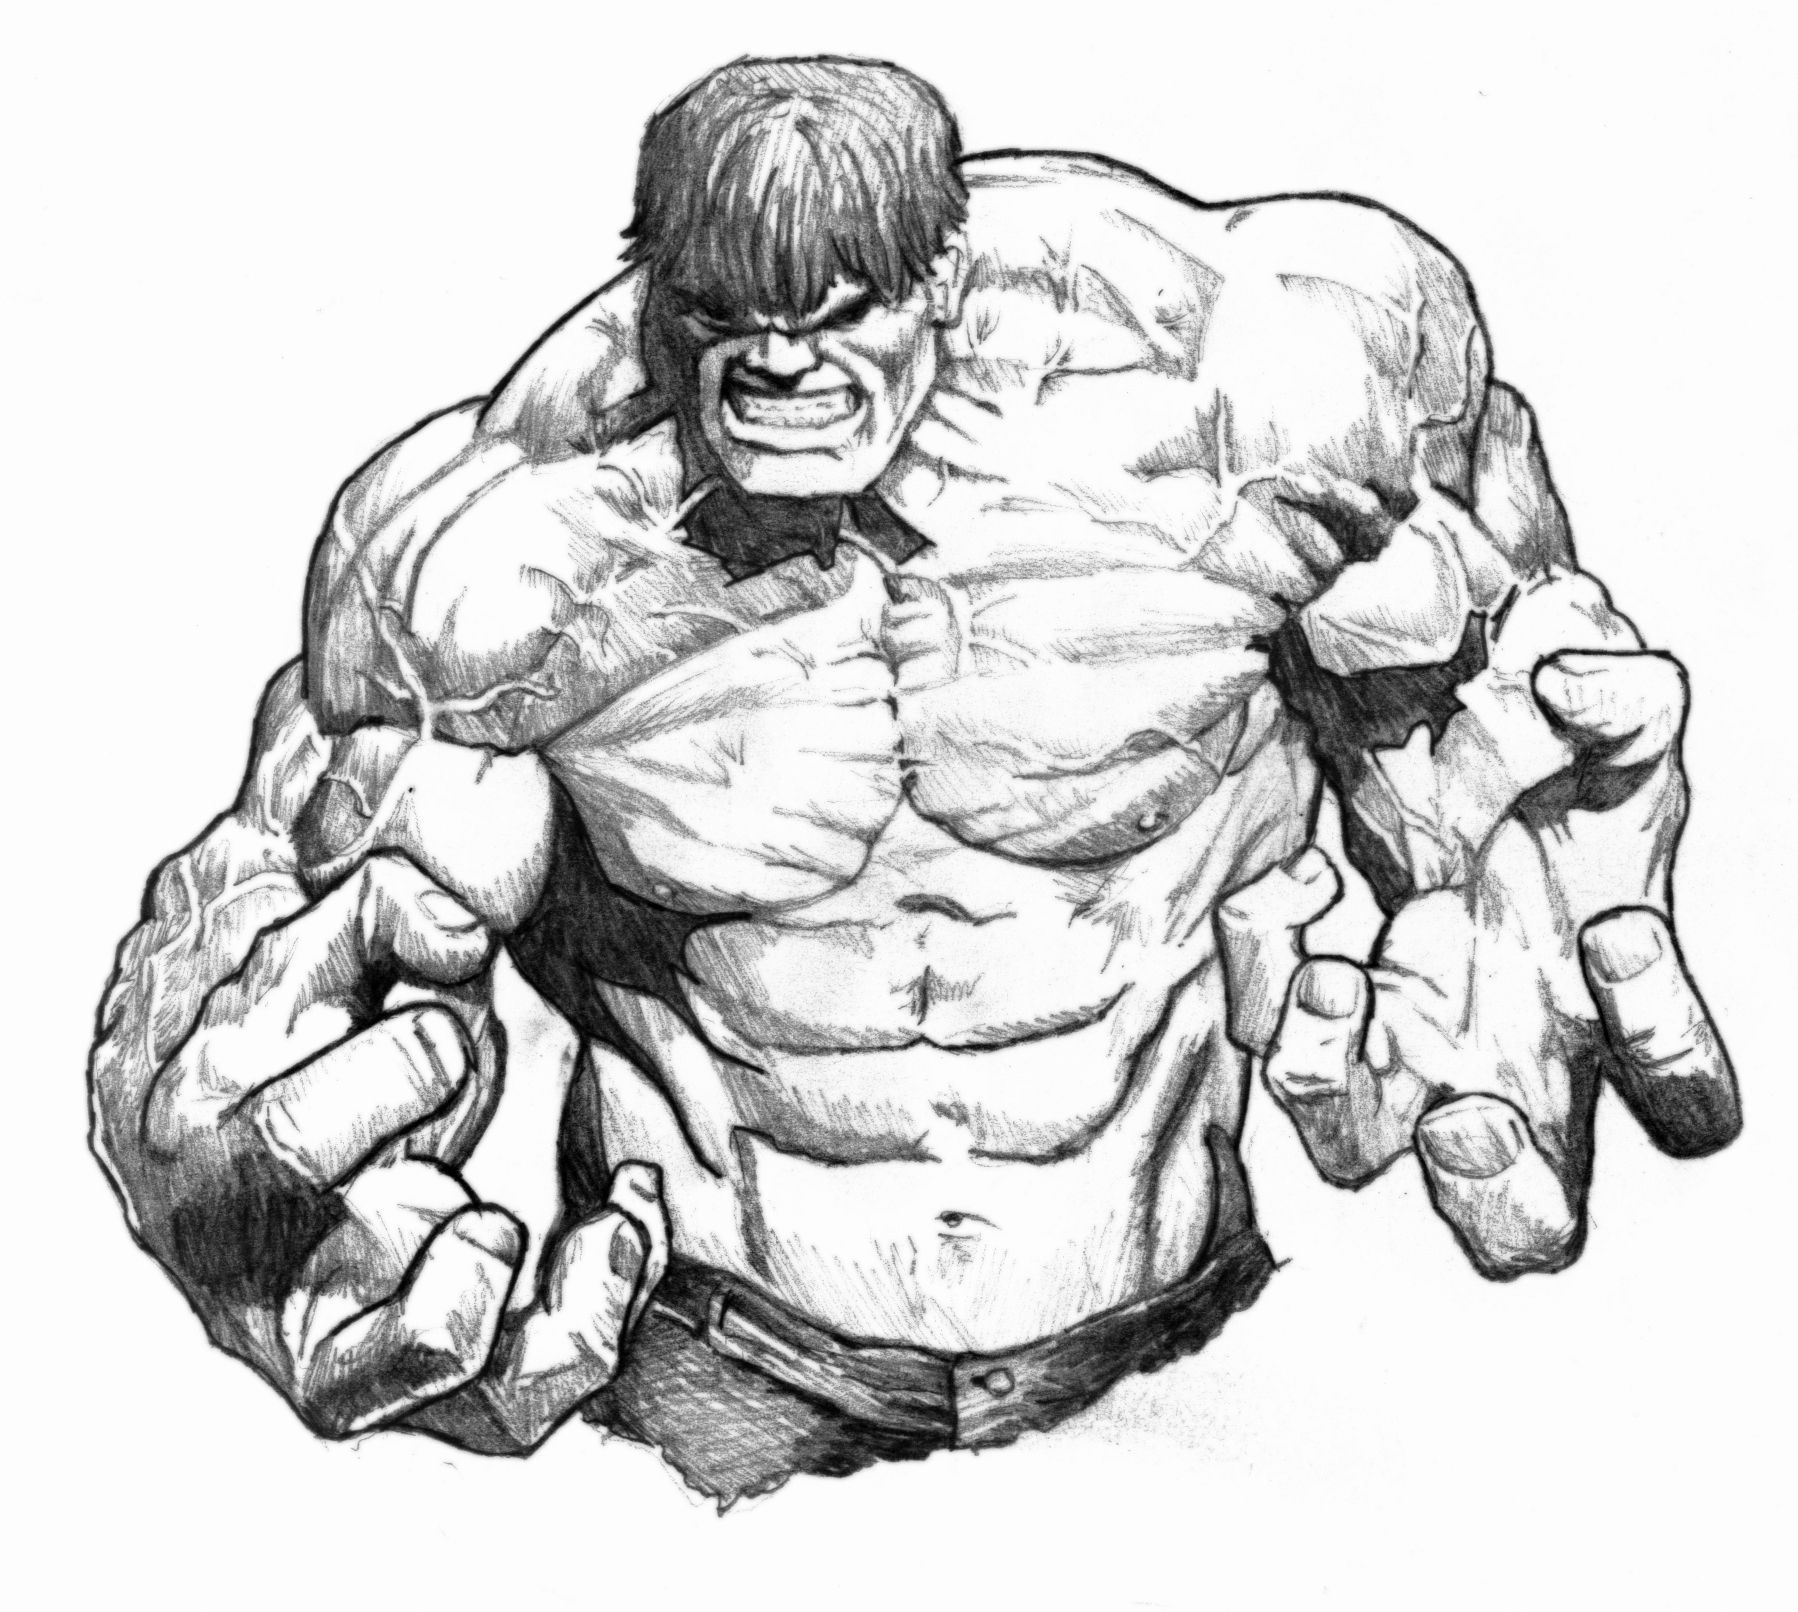 The Incredible Hulk Drawings   Google Search